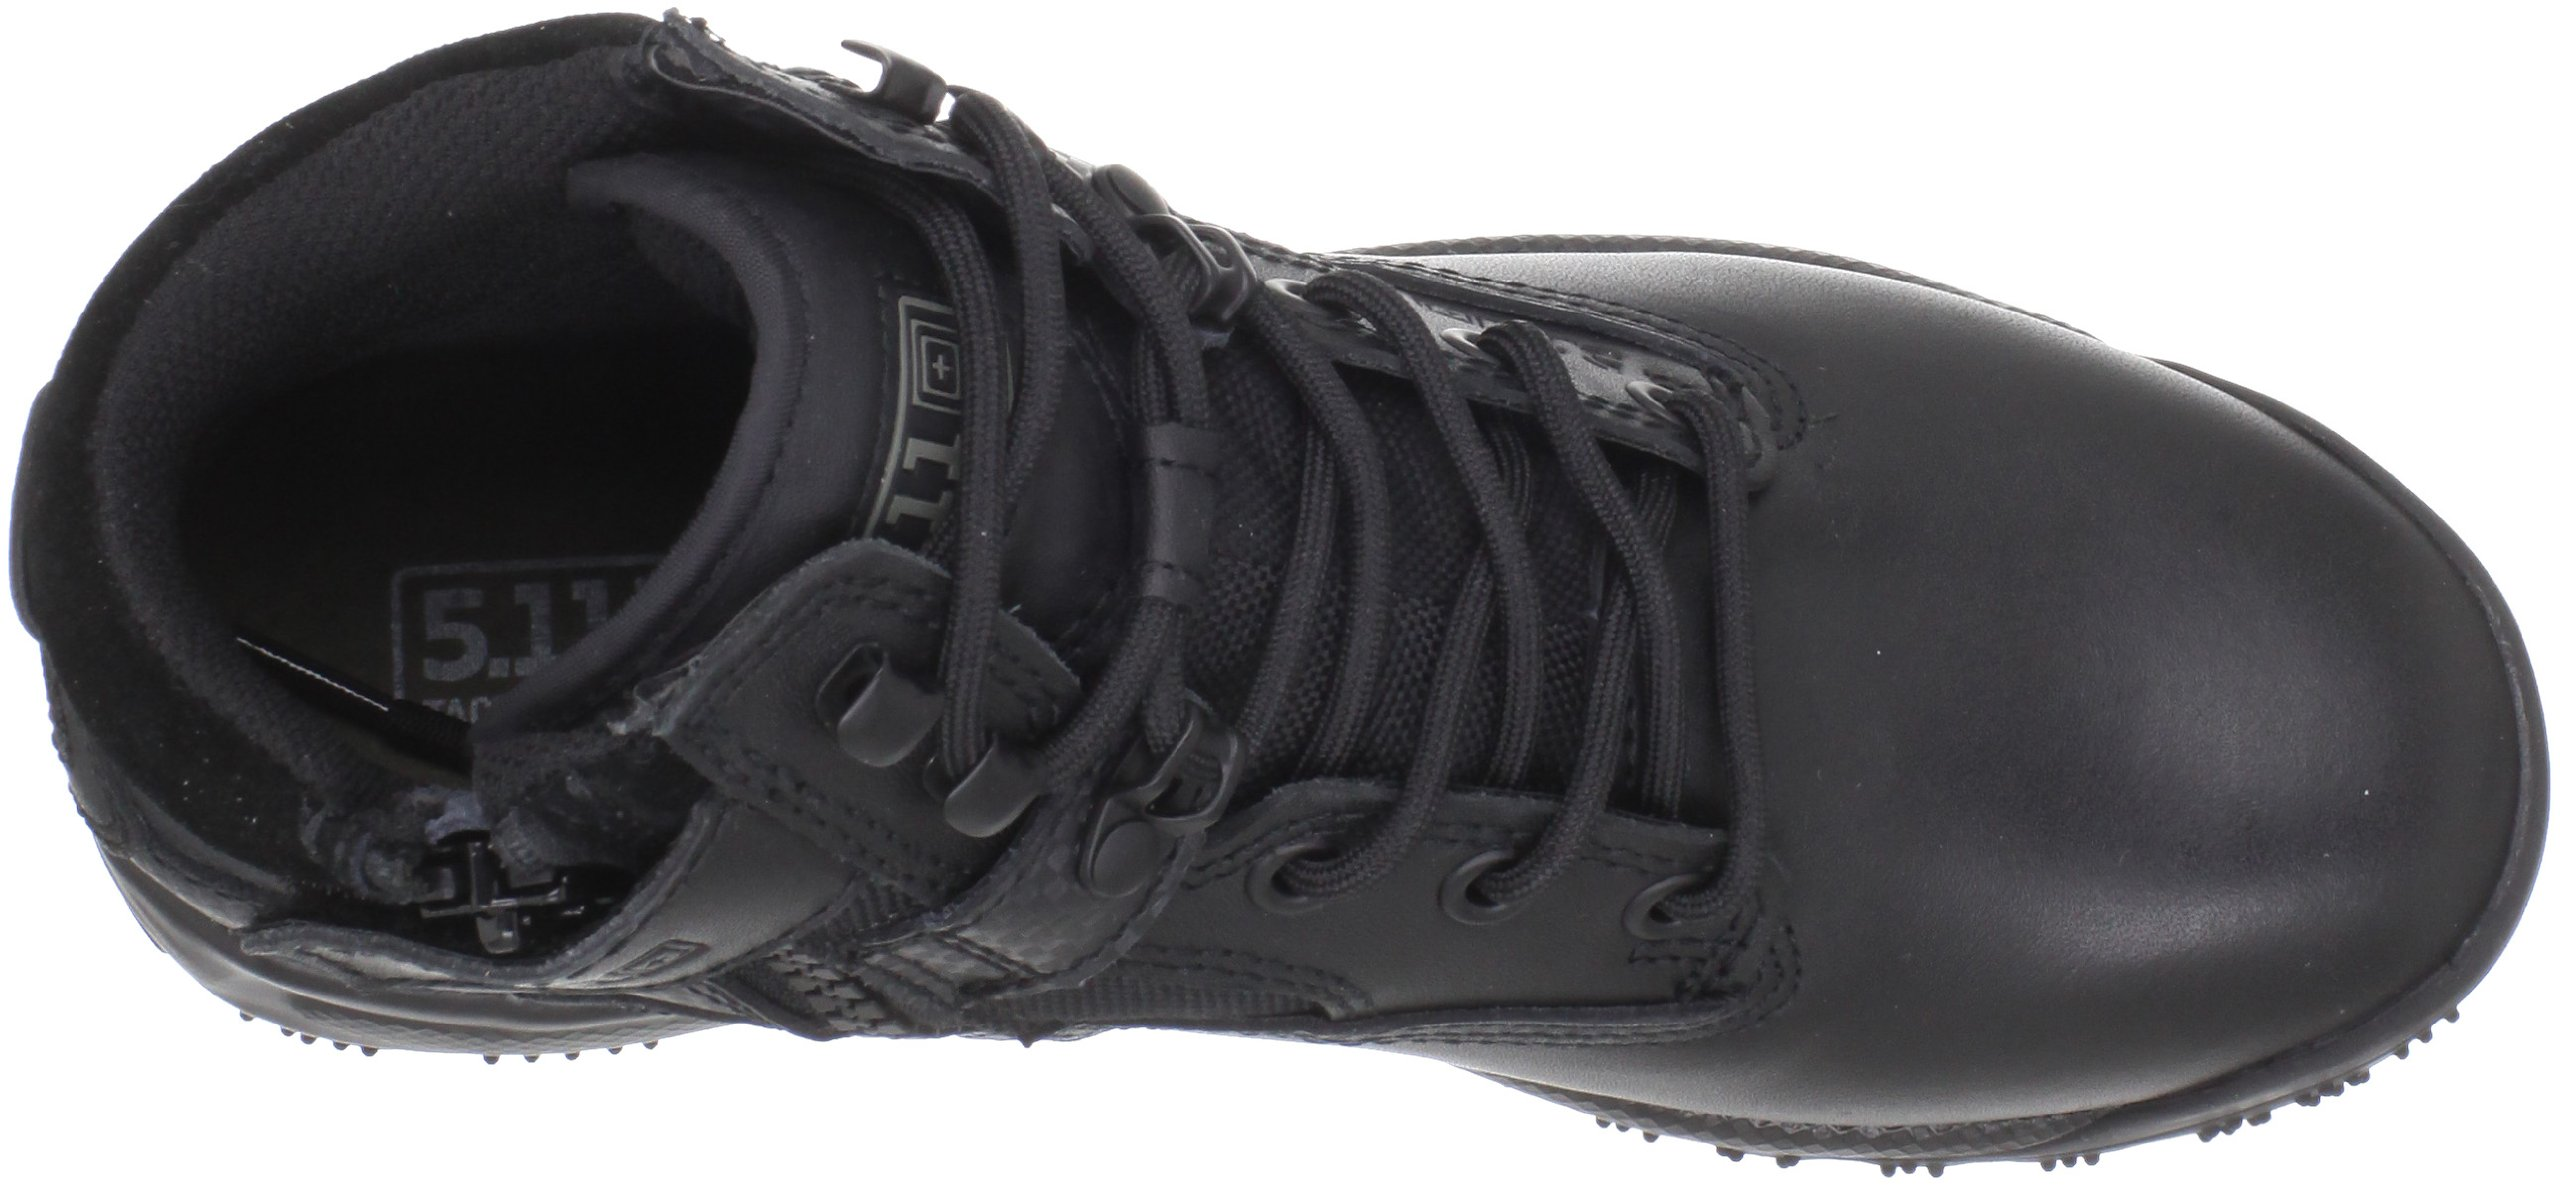 5.11 Women's A.T.A.C. 6'' Side Zip Tactical Boots, Style 12025, Black, 6 R by 5.11 (Image #7)